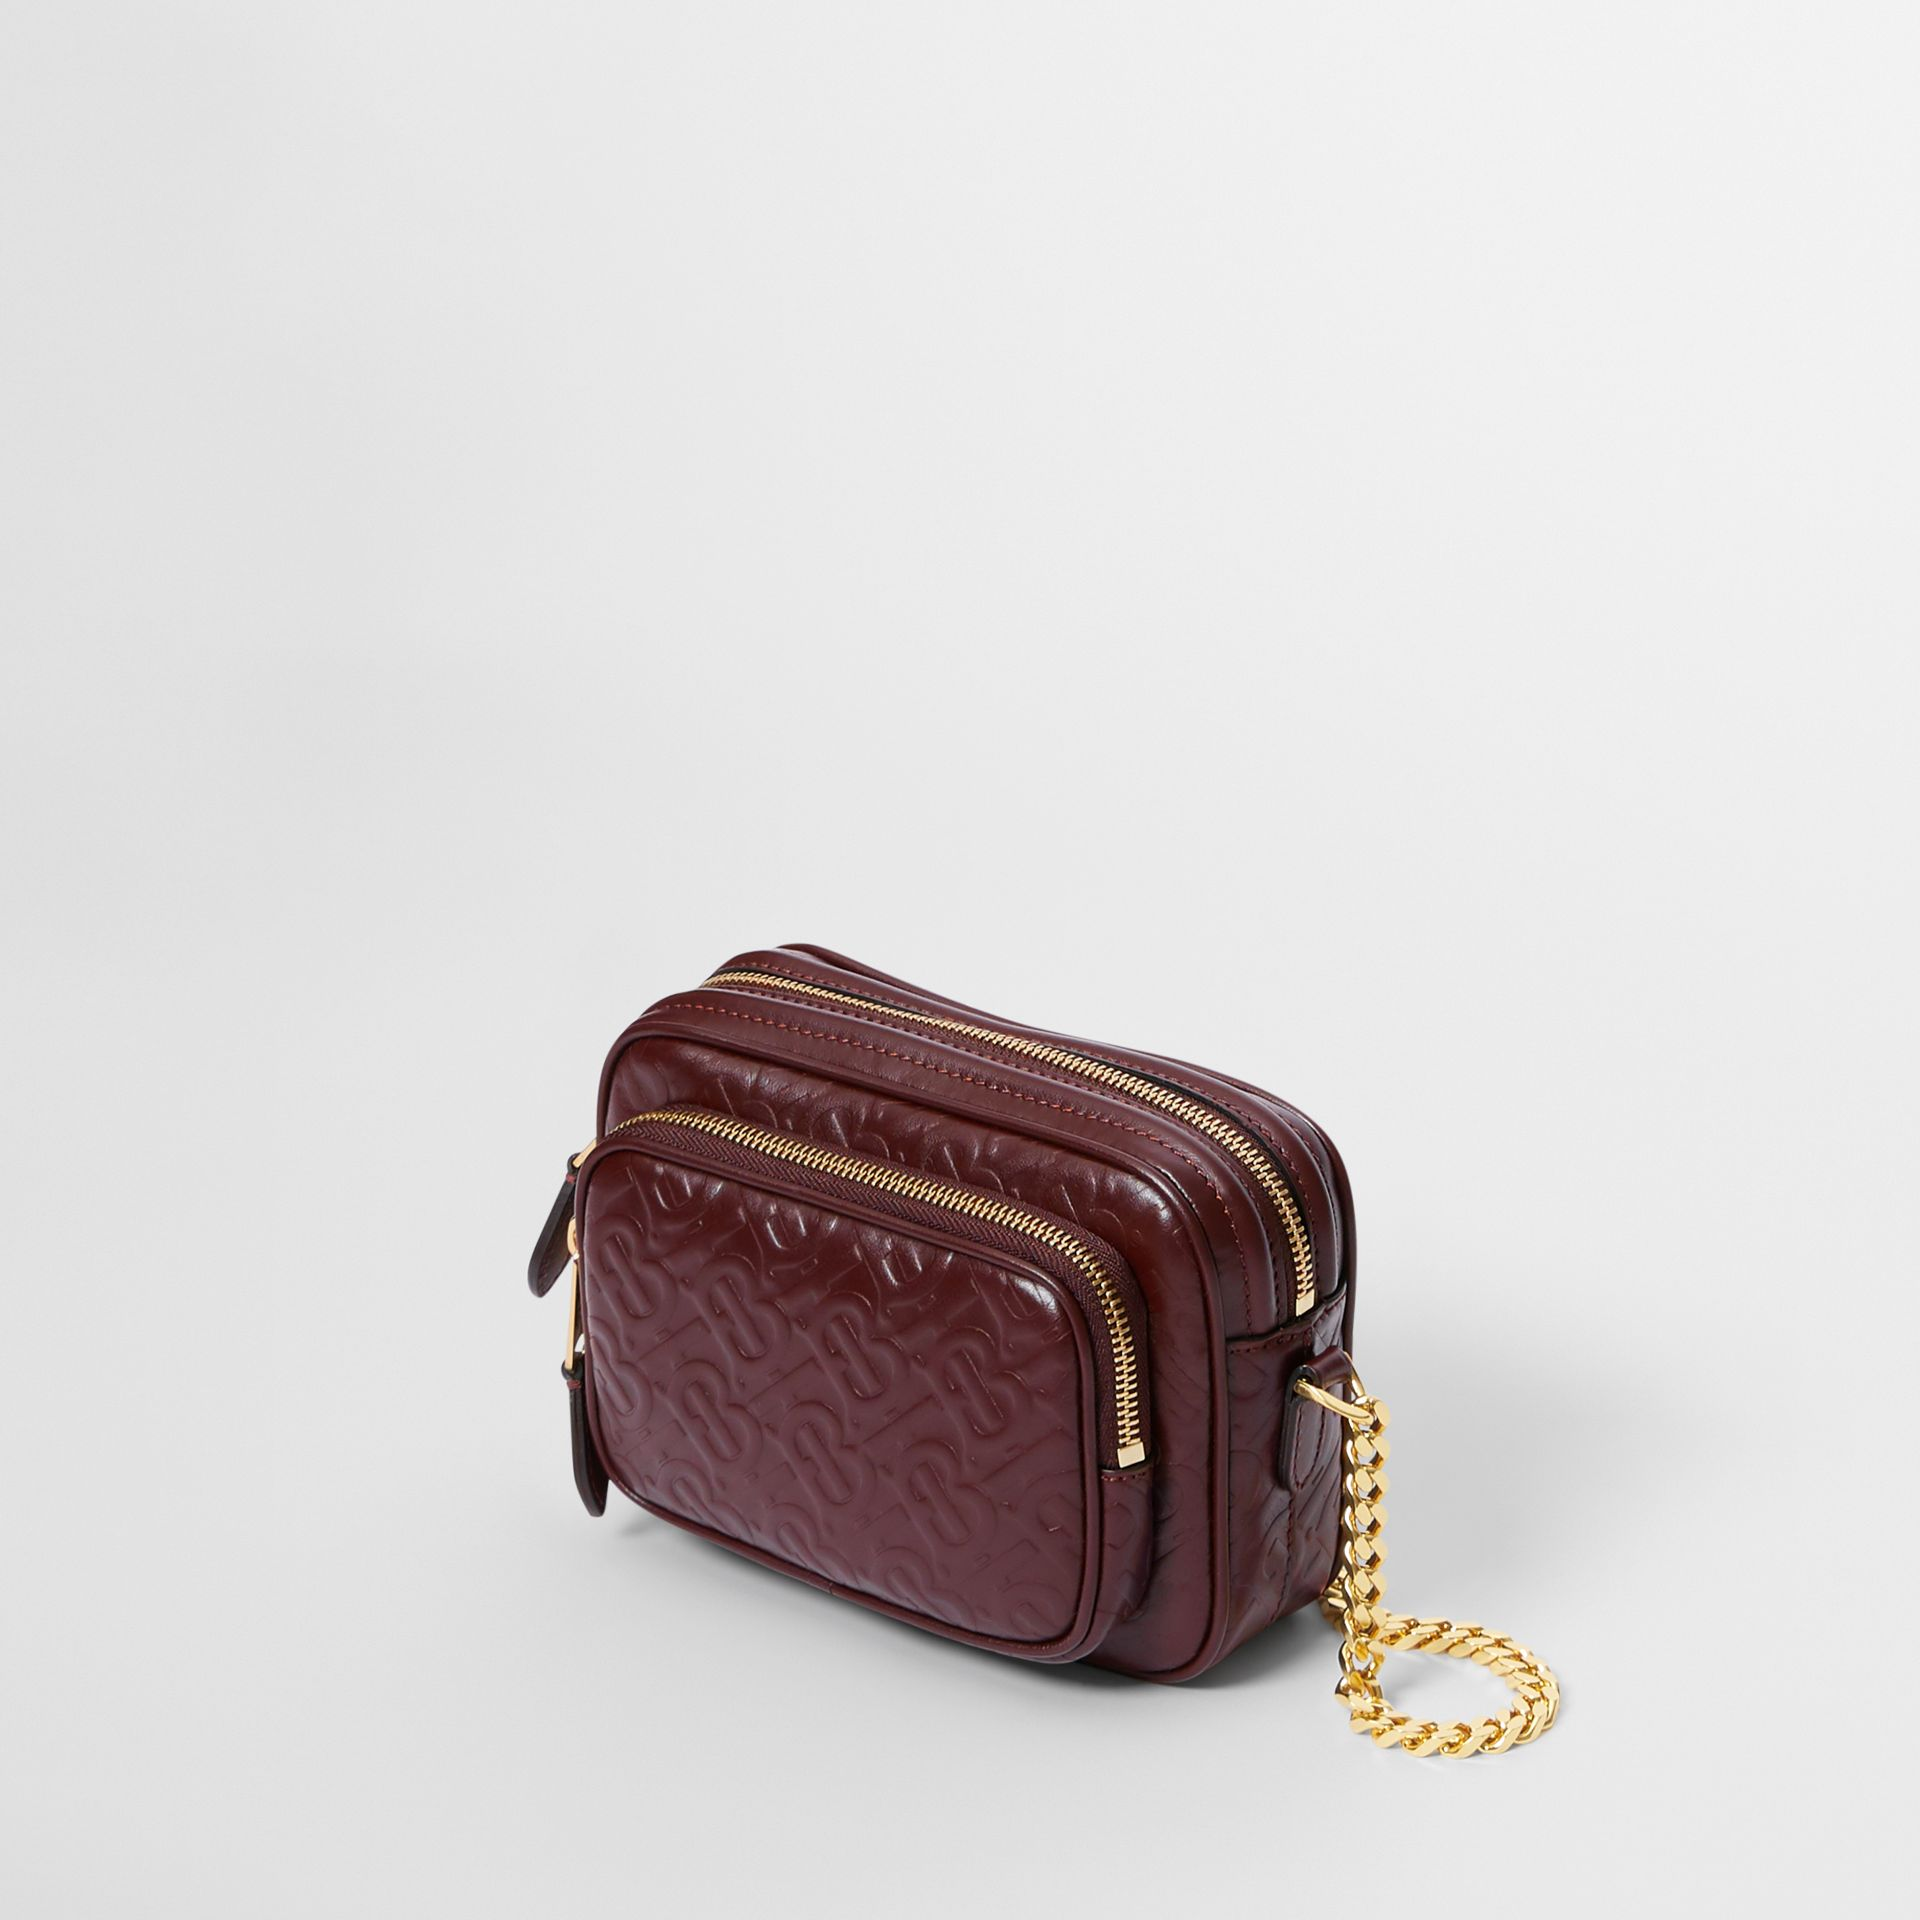 Camera bag in pelle con monogramma (Borgogna Scuro) - Donna | Burberry - immagine della galleria 2